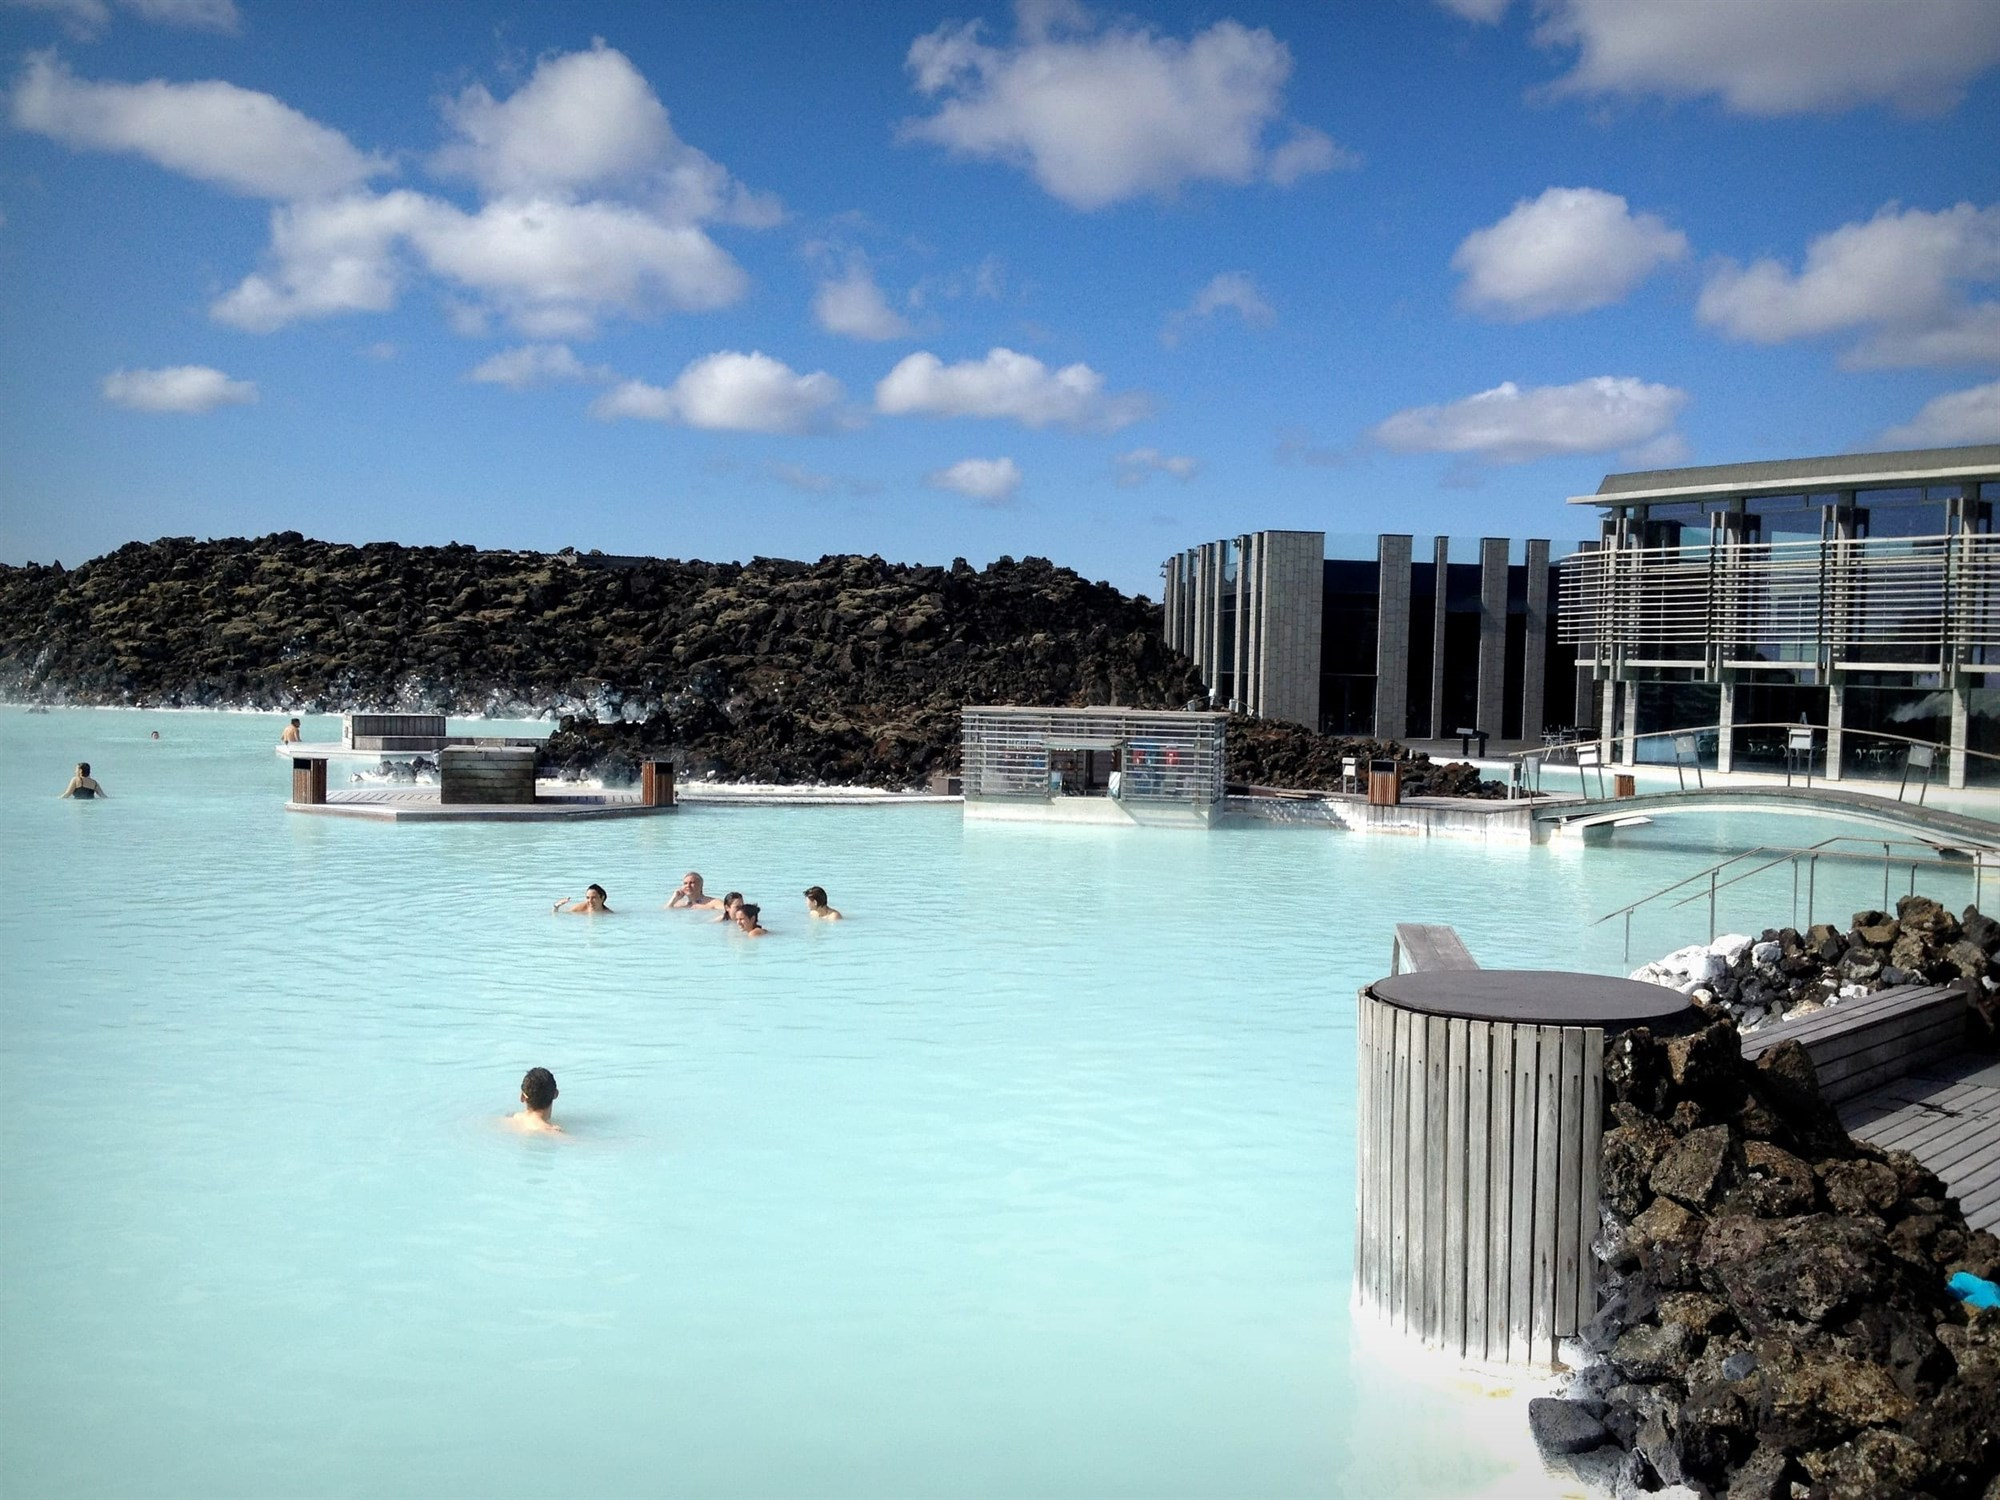 people enjoying the milky blue waters of blue lagoon in a sunny afternon